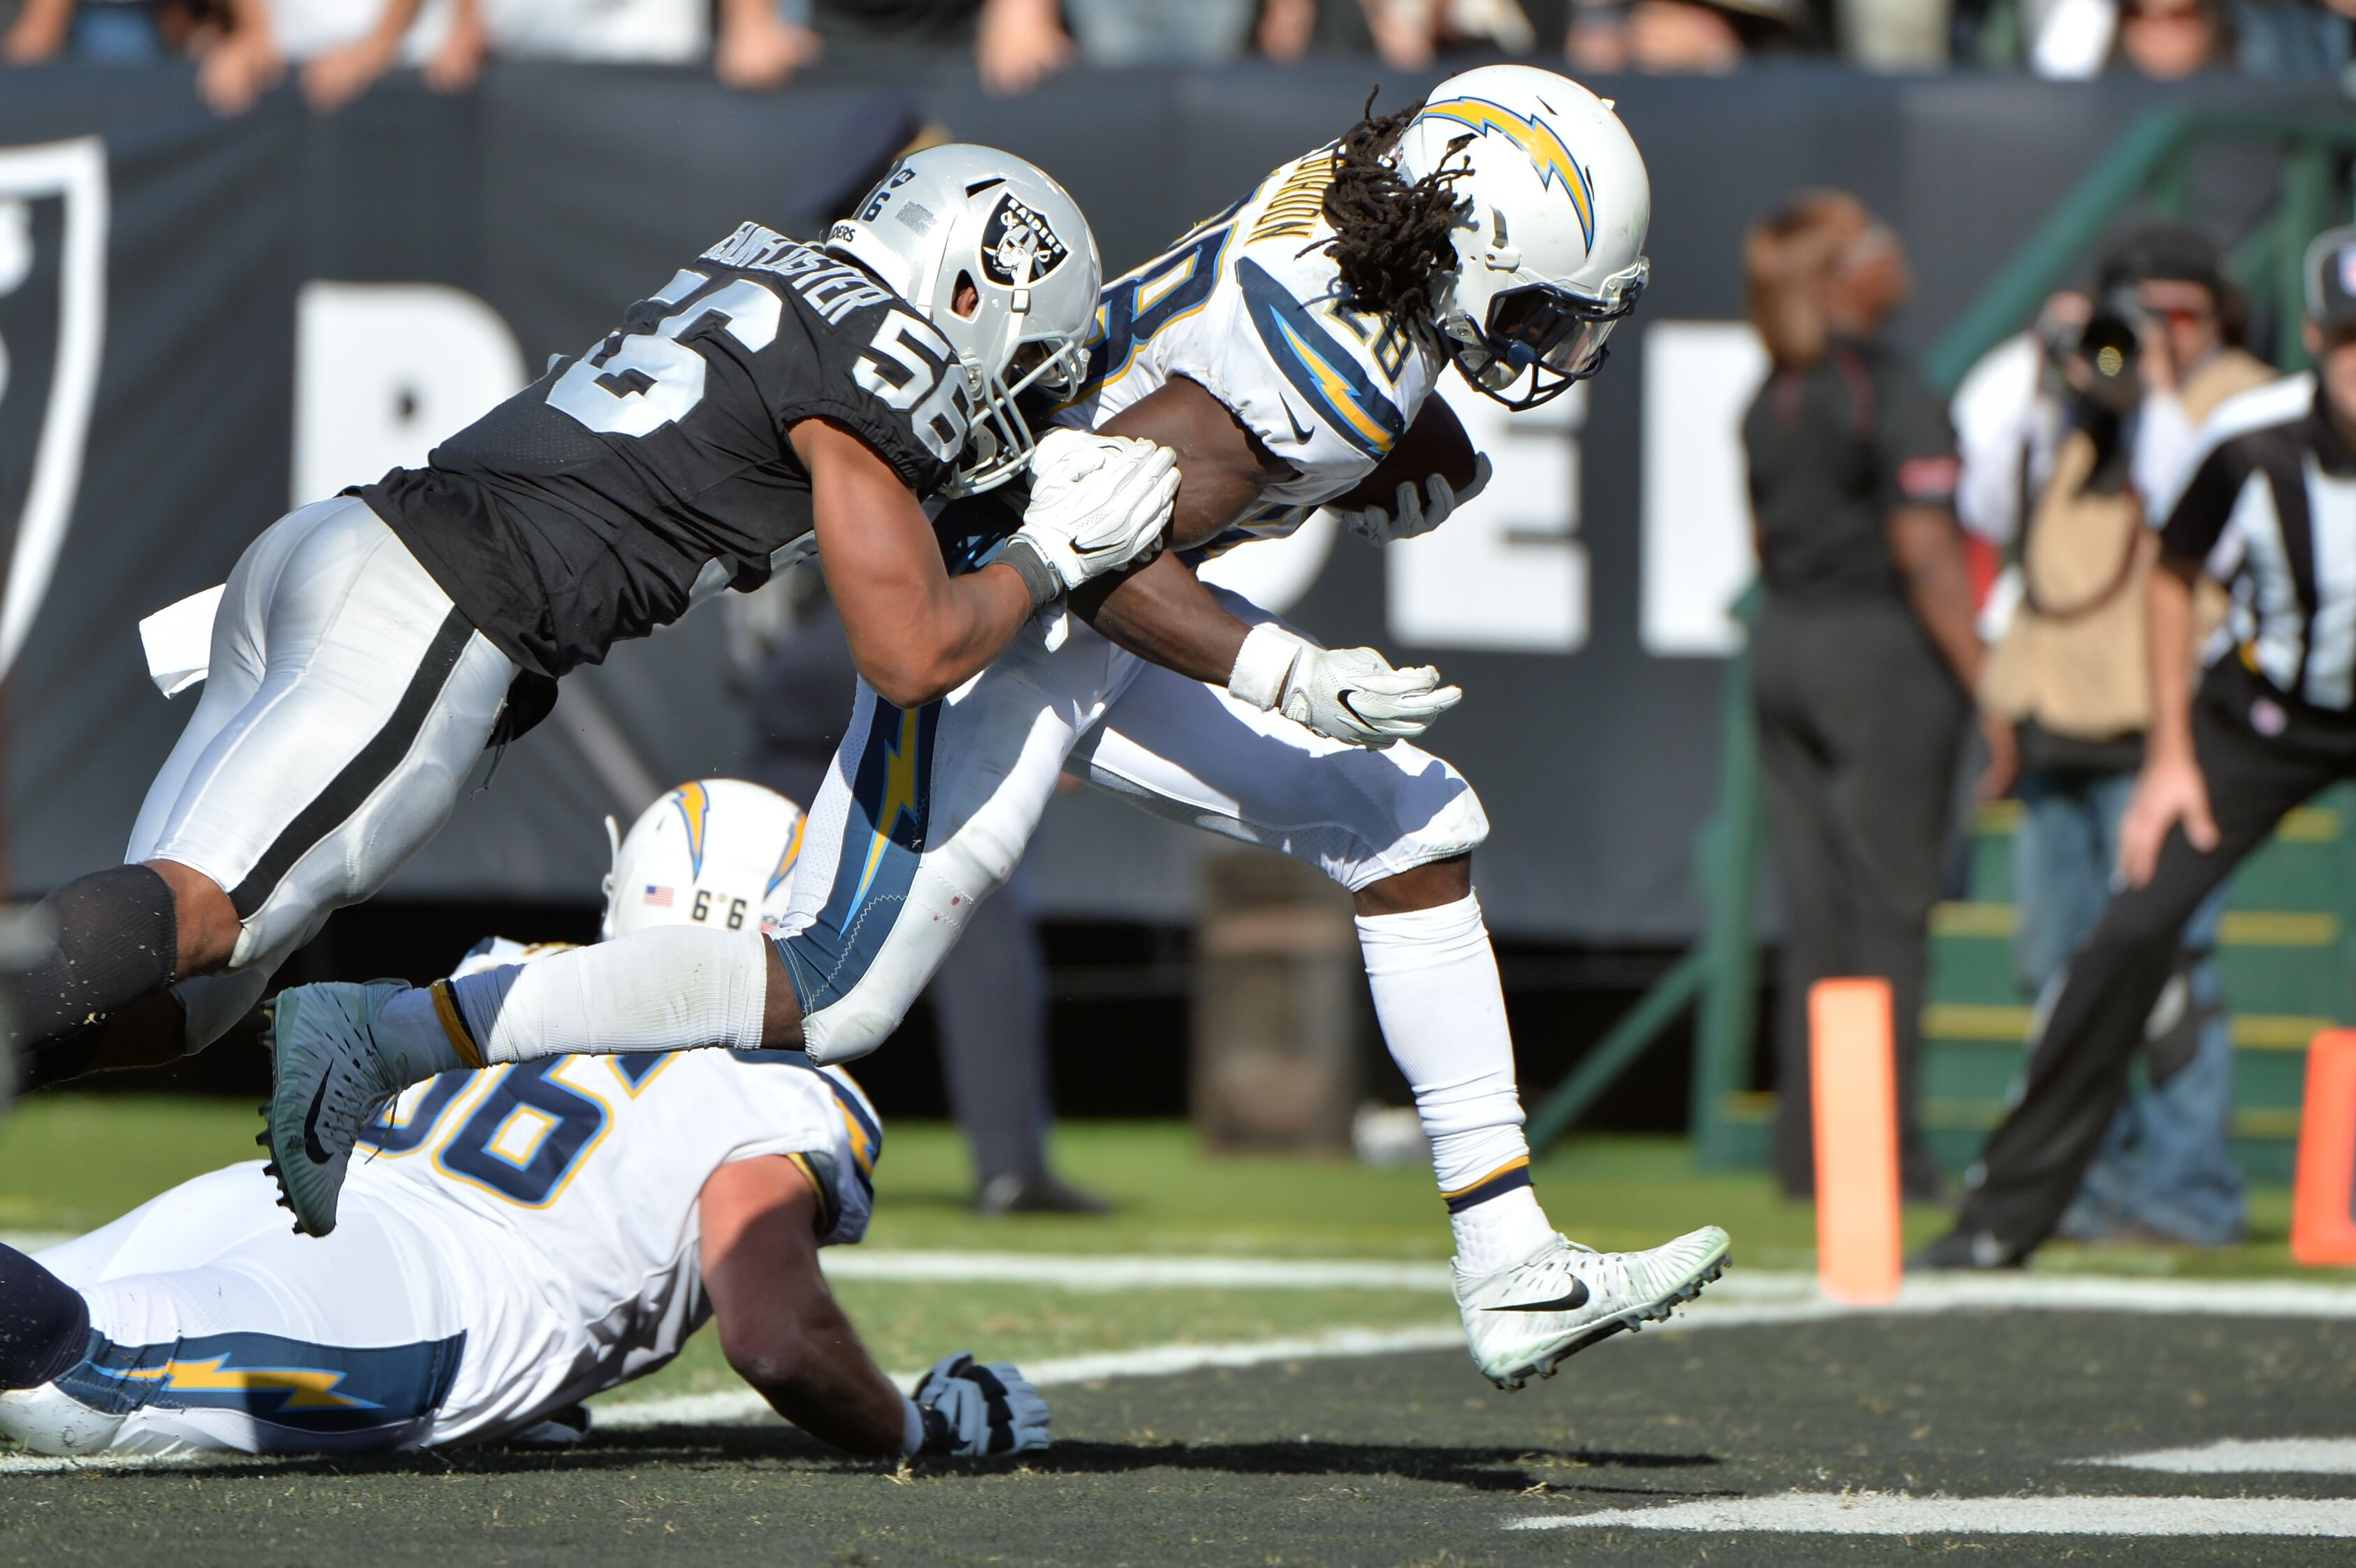 861744504-los-angeles-chargers-v-oakland-raiders.jpg